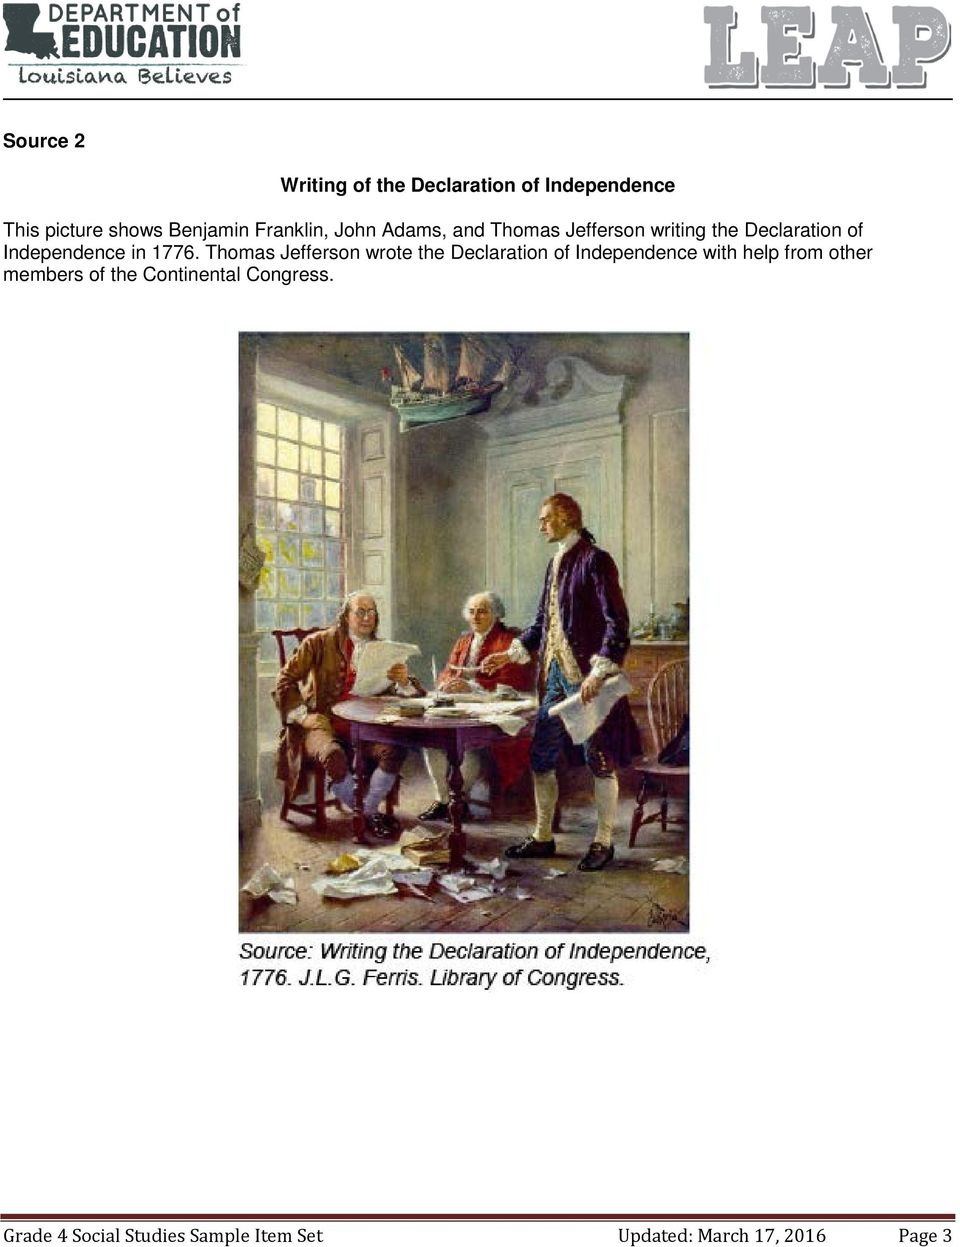 1776. Thomas Jefferson wrote the Declaration of Independence with help from other